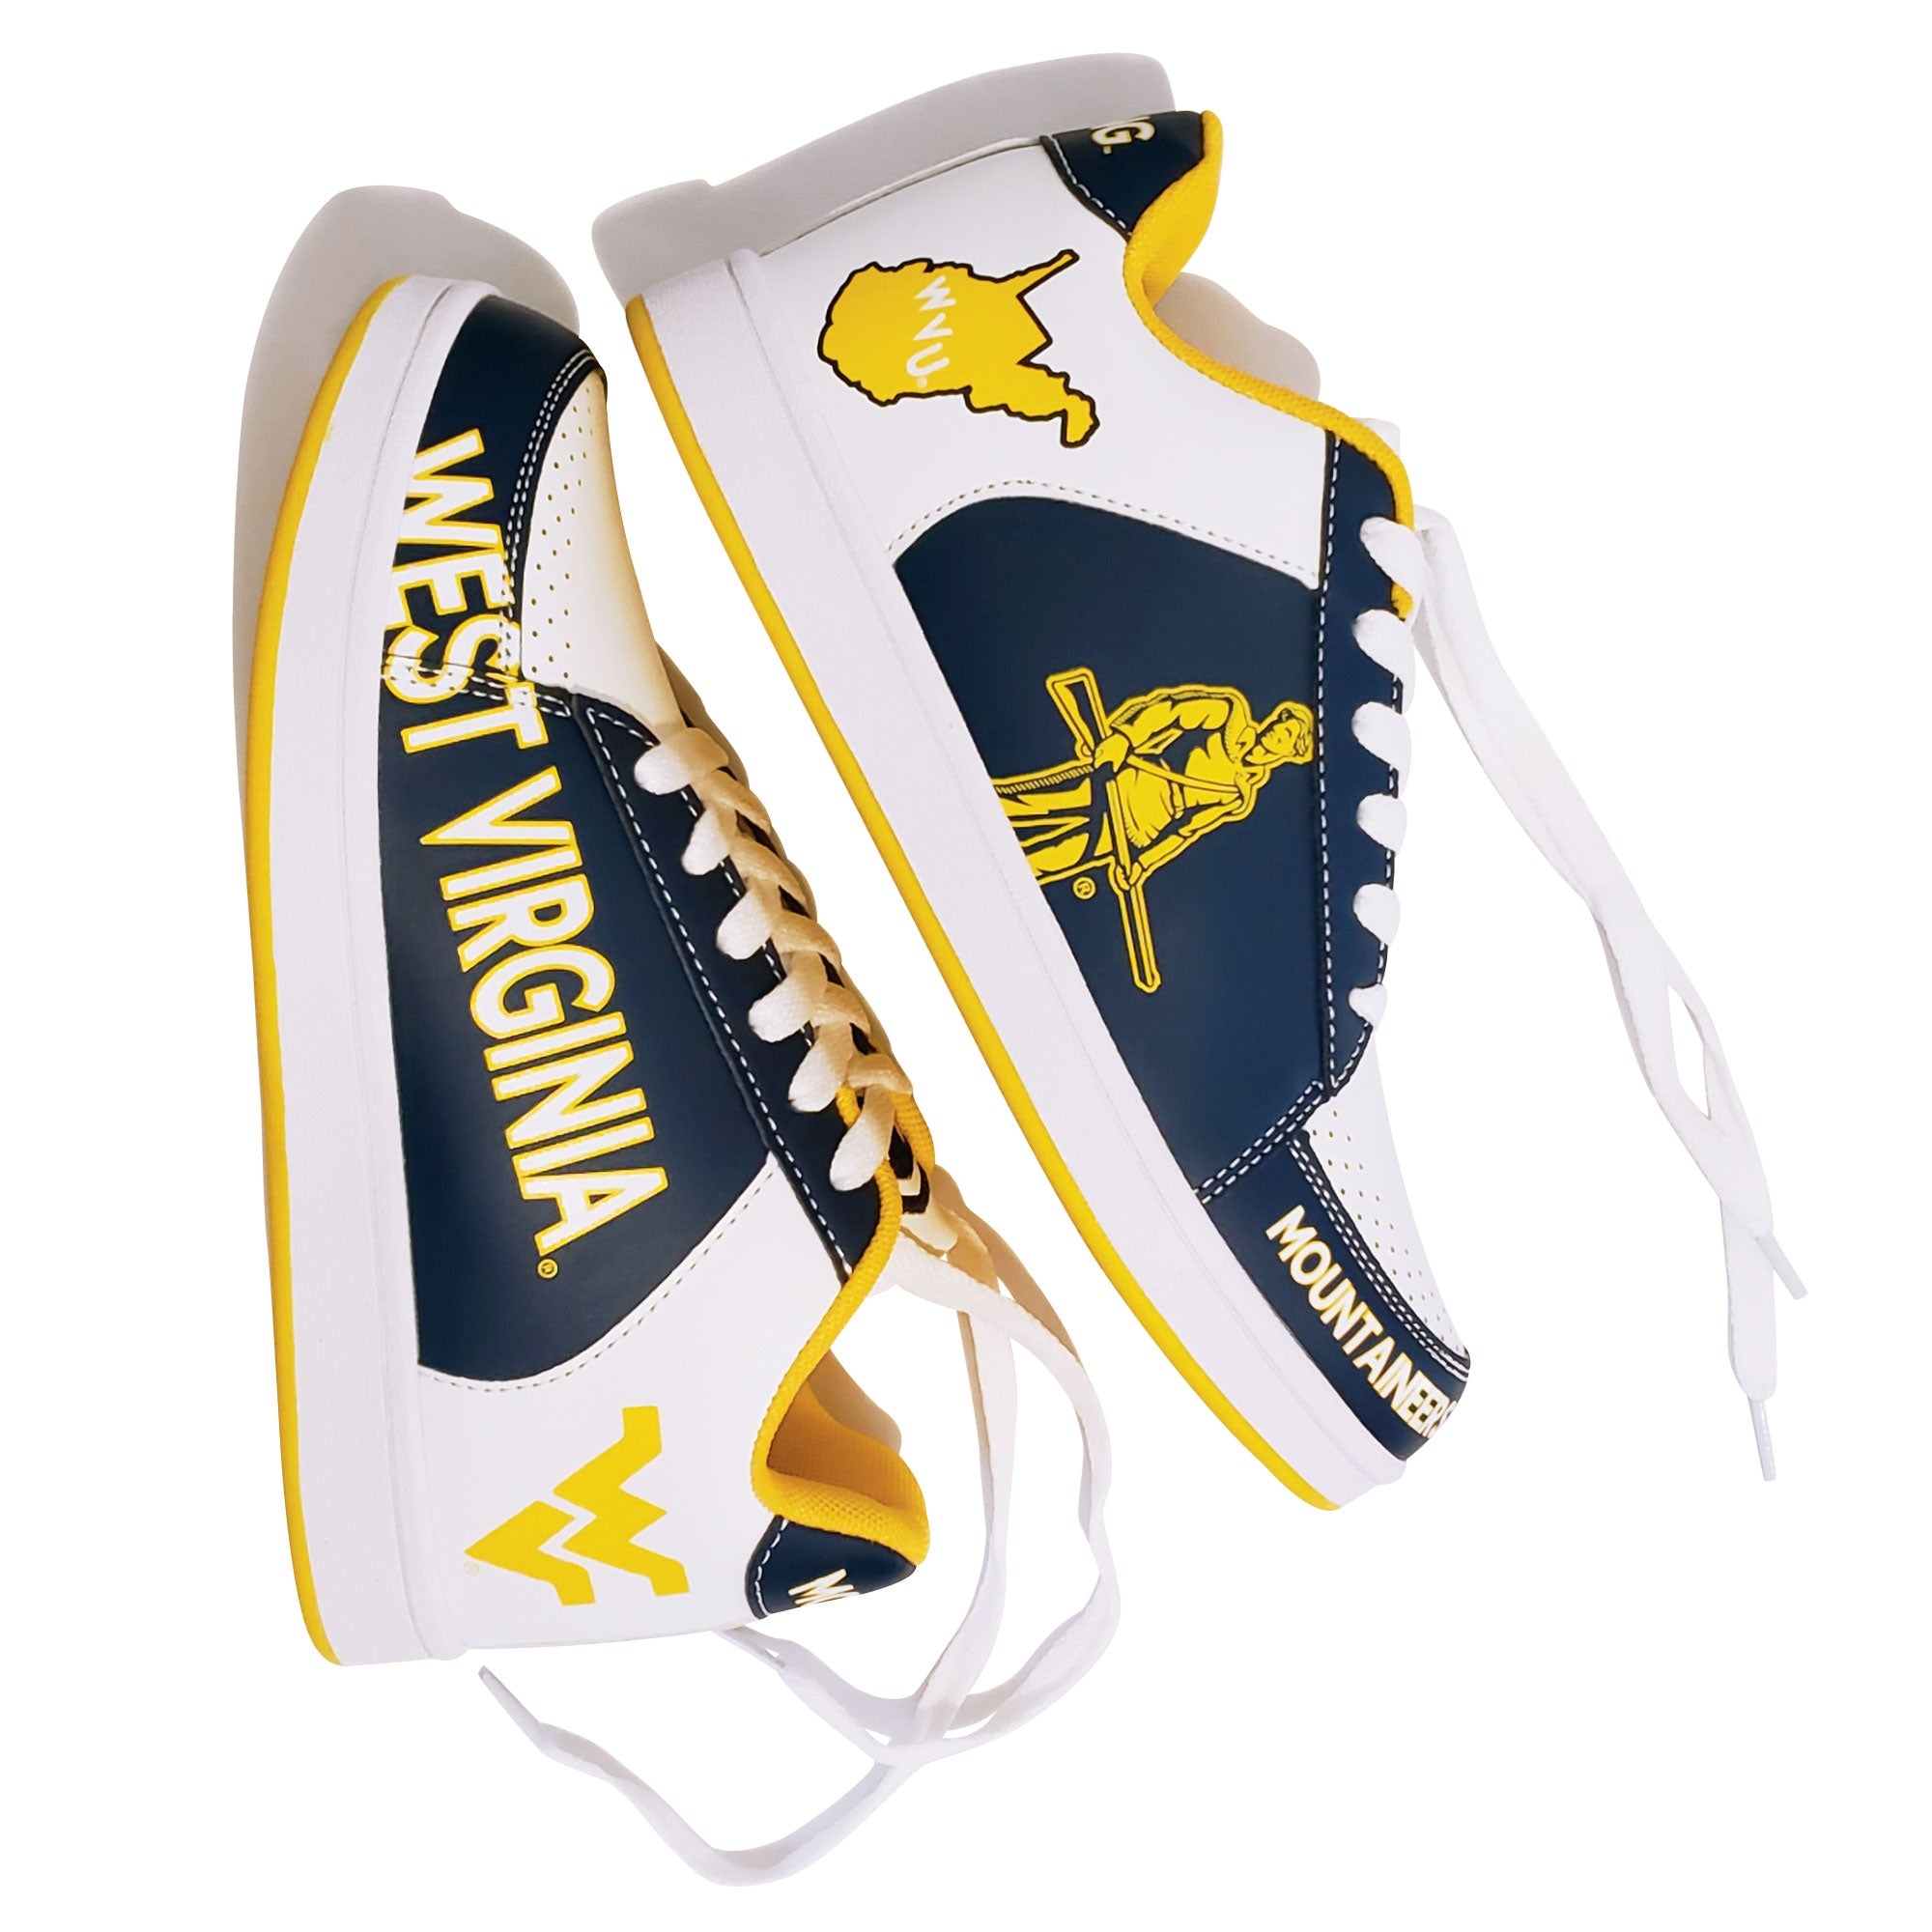 West Virginia Mountaineers 'AllMountaineers' shoes